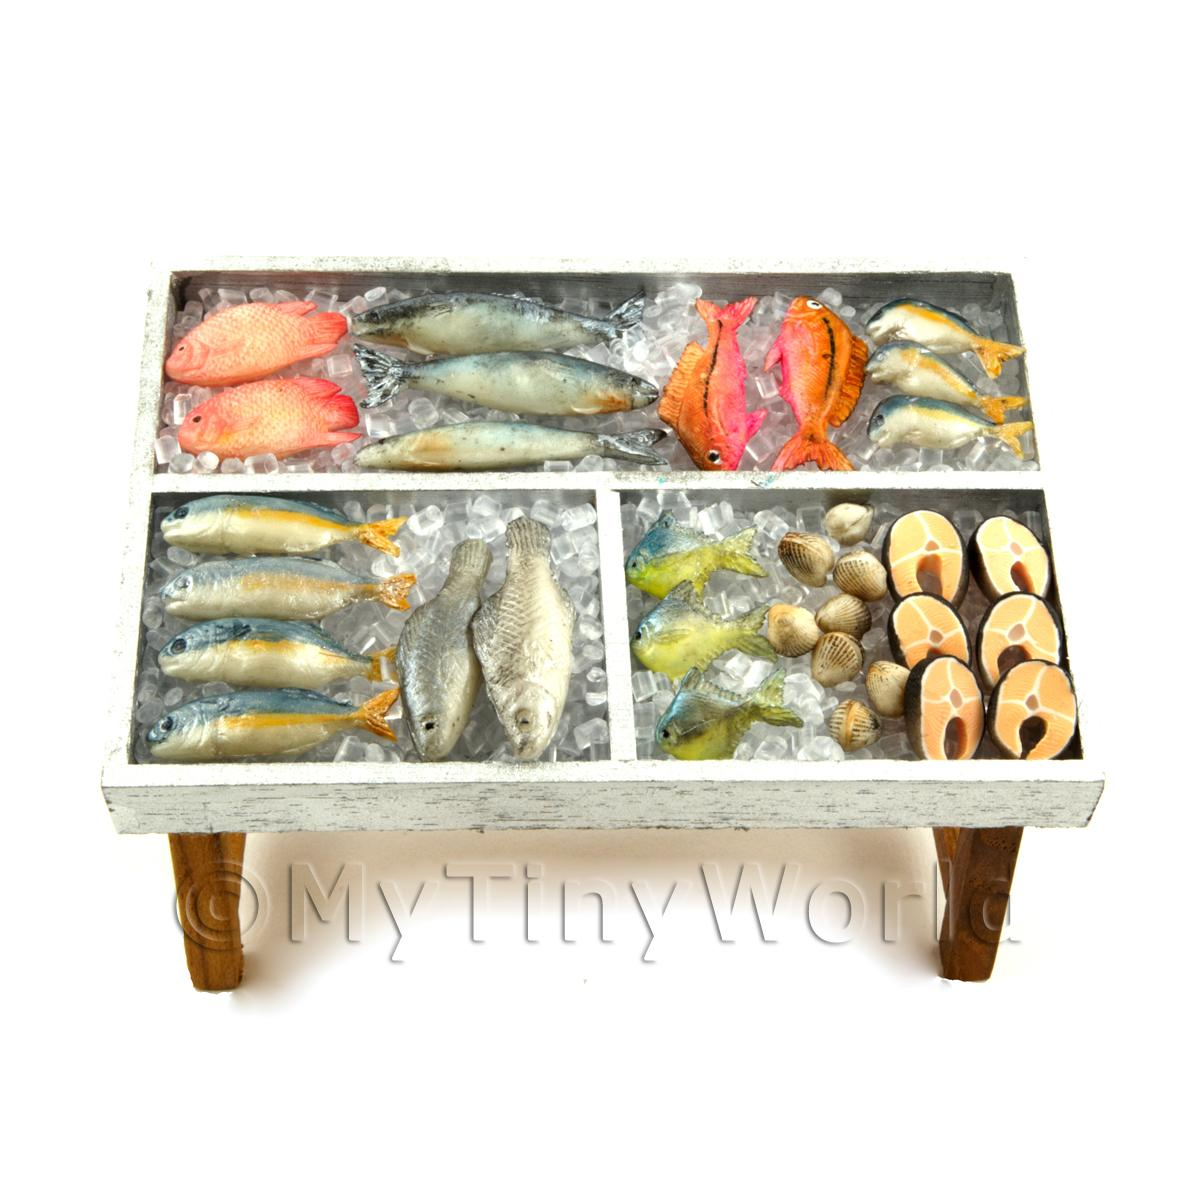 Dolls House Miniature Fully Stocked Fishmonger Counter Style 2